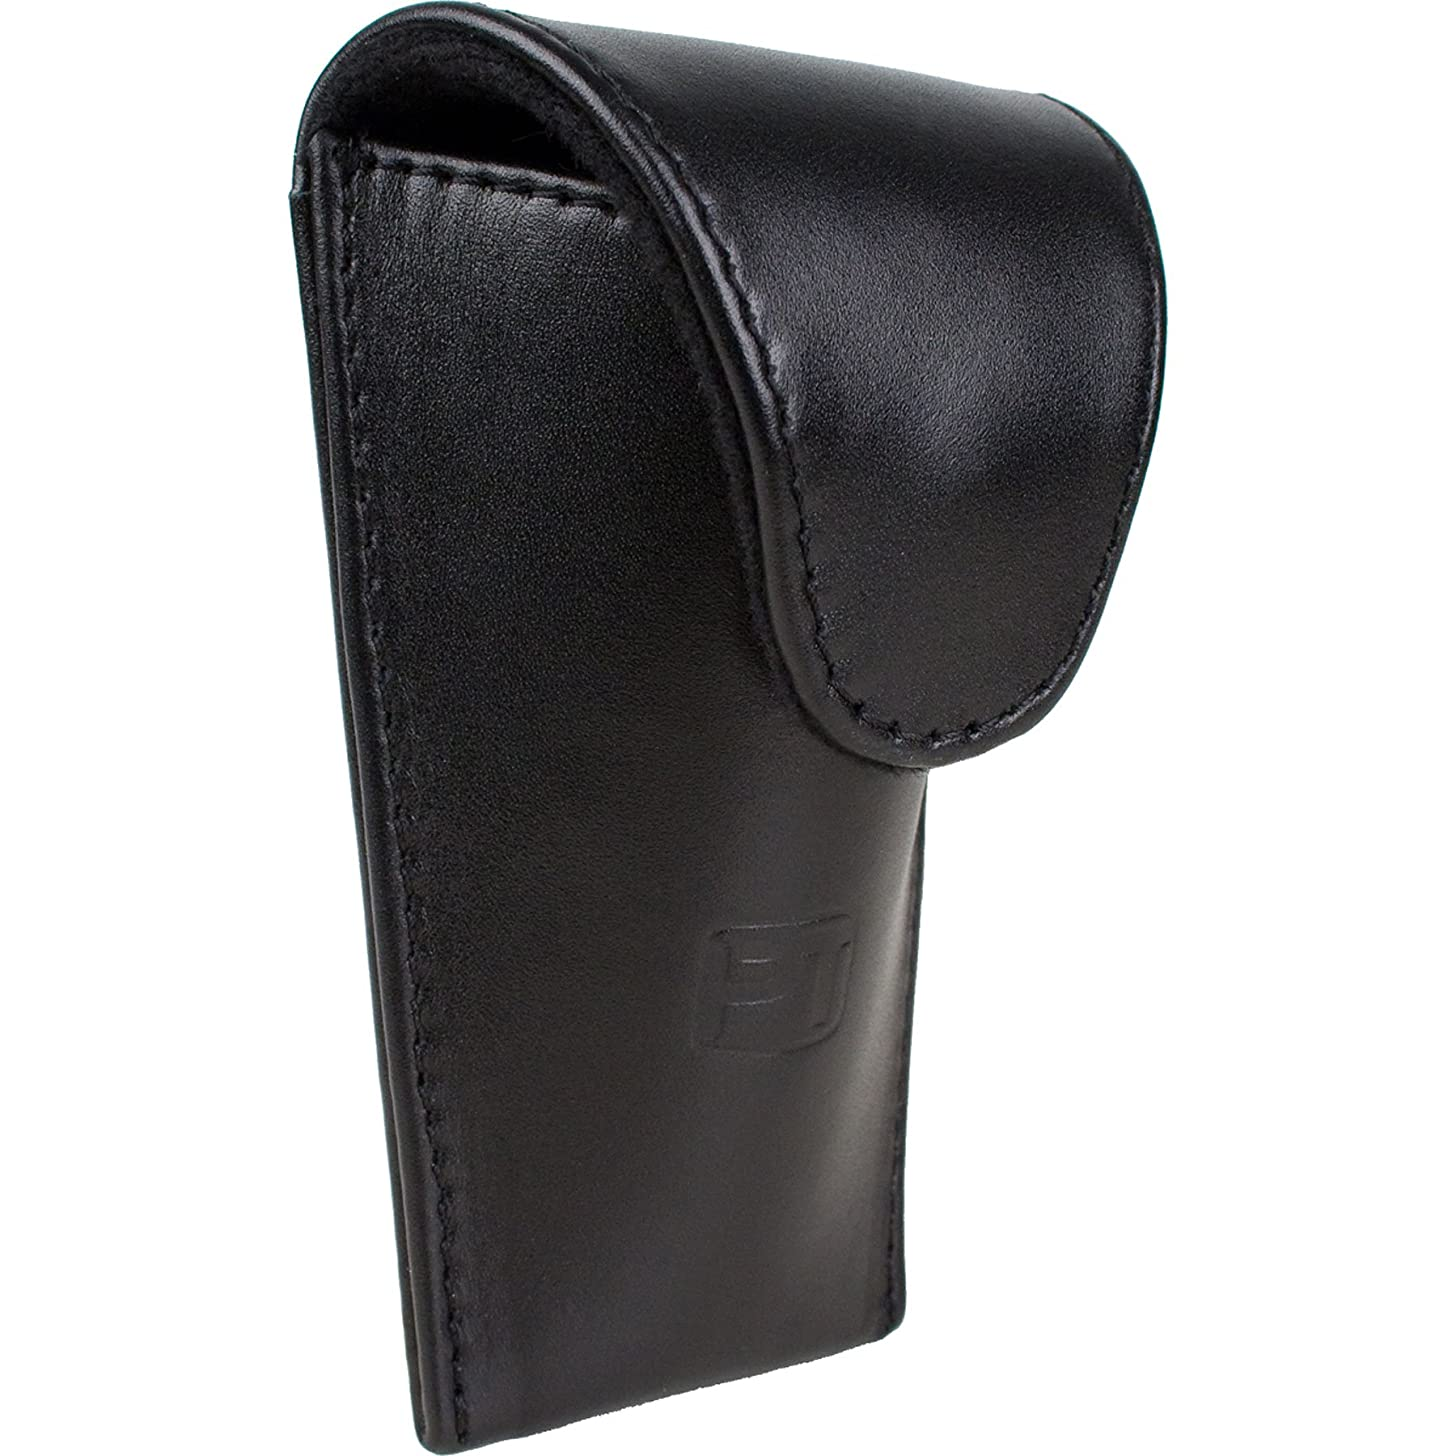 Protec Trombone / Euphonium Mouthpiece Padded Leather Pouch with Secure Magnetic Snap Closure, Model L204